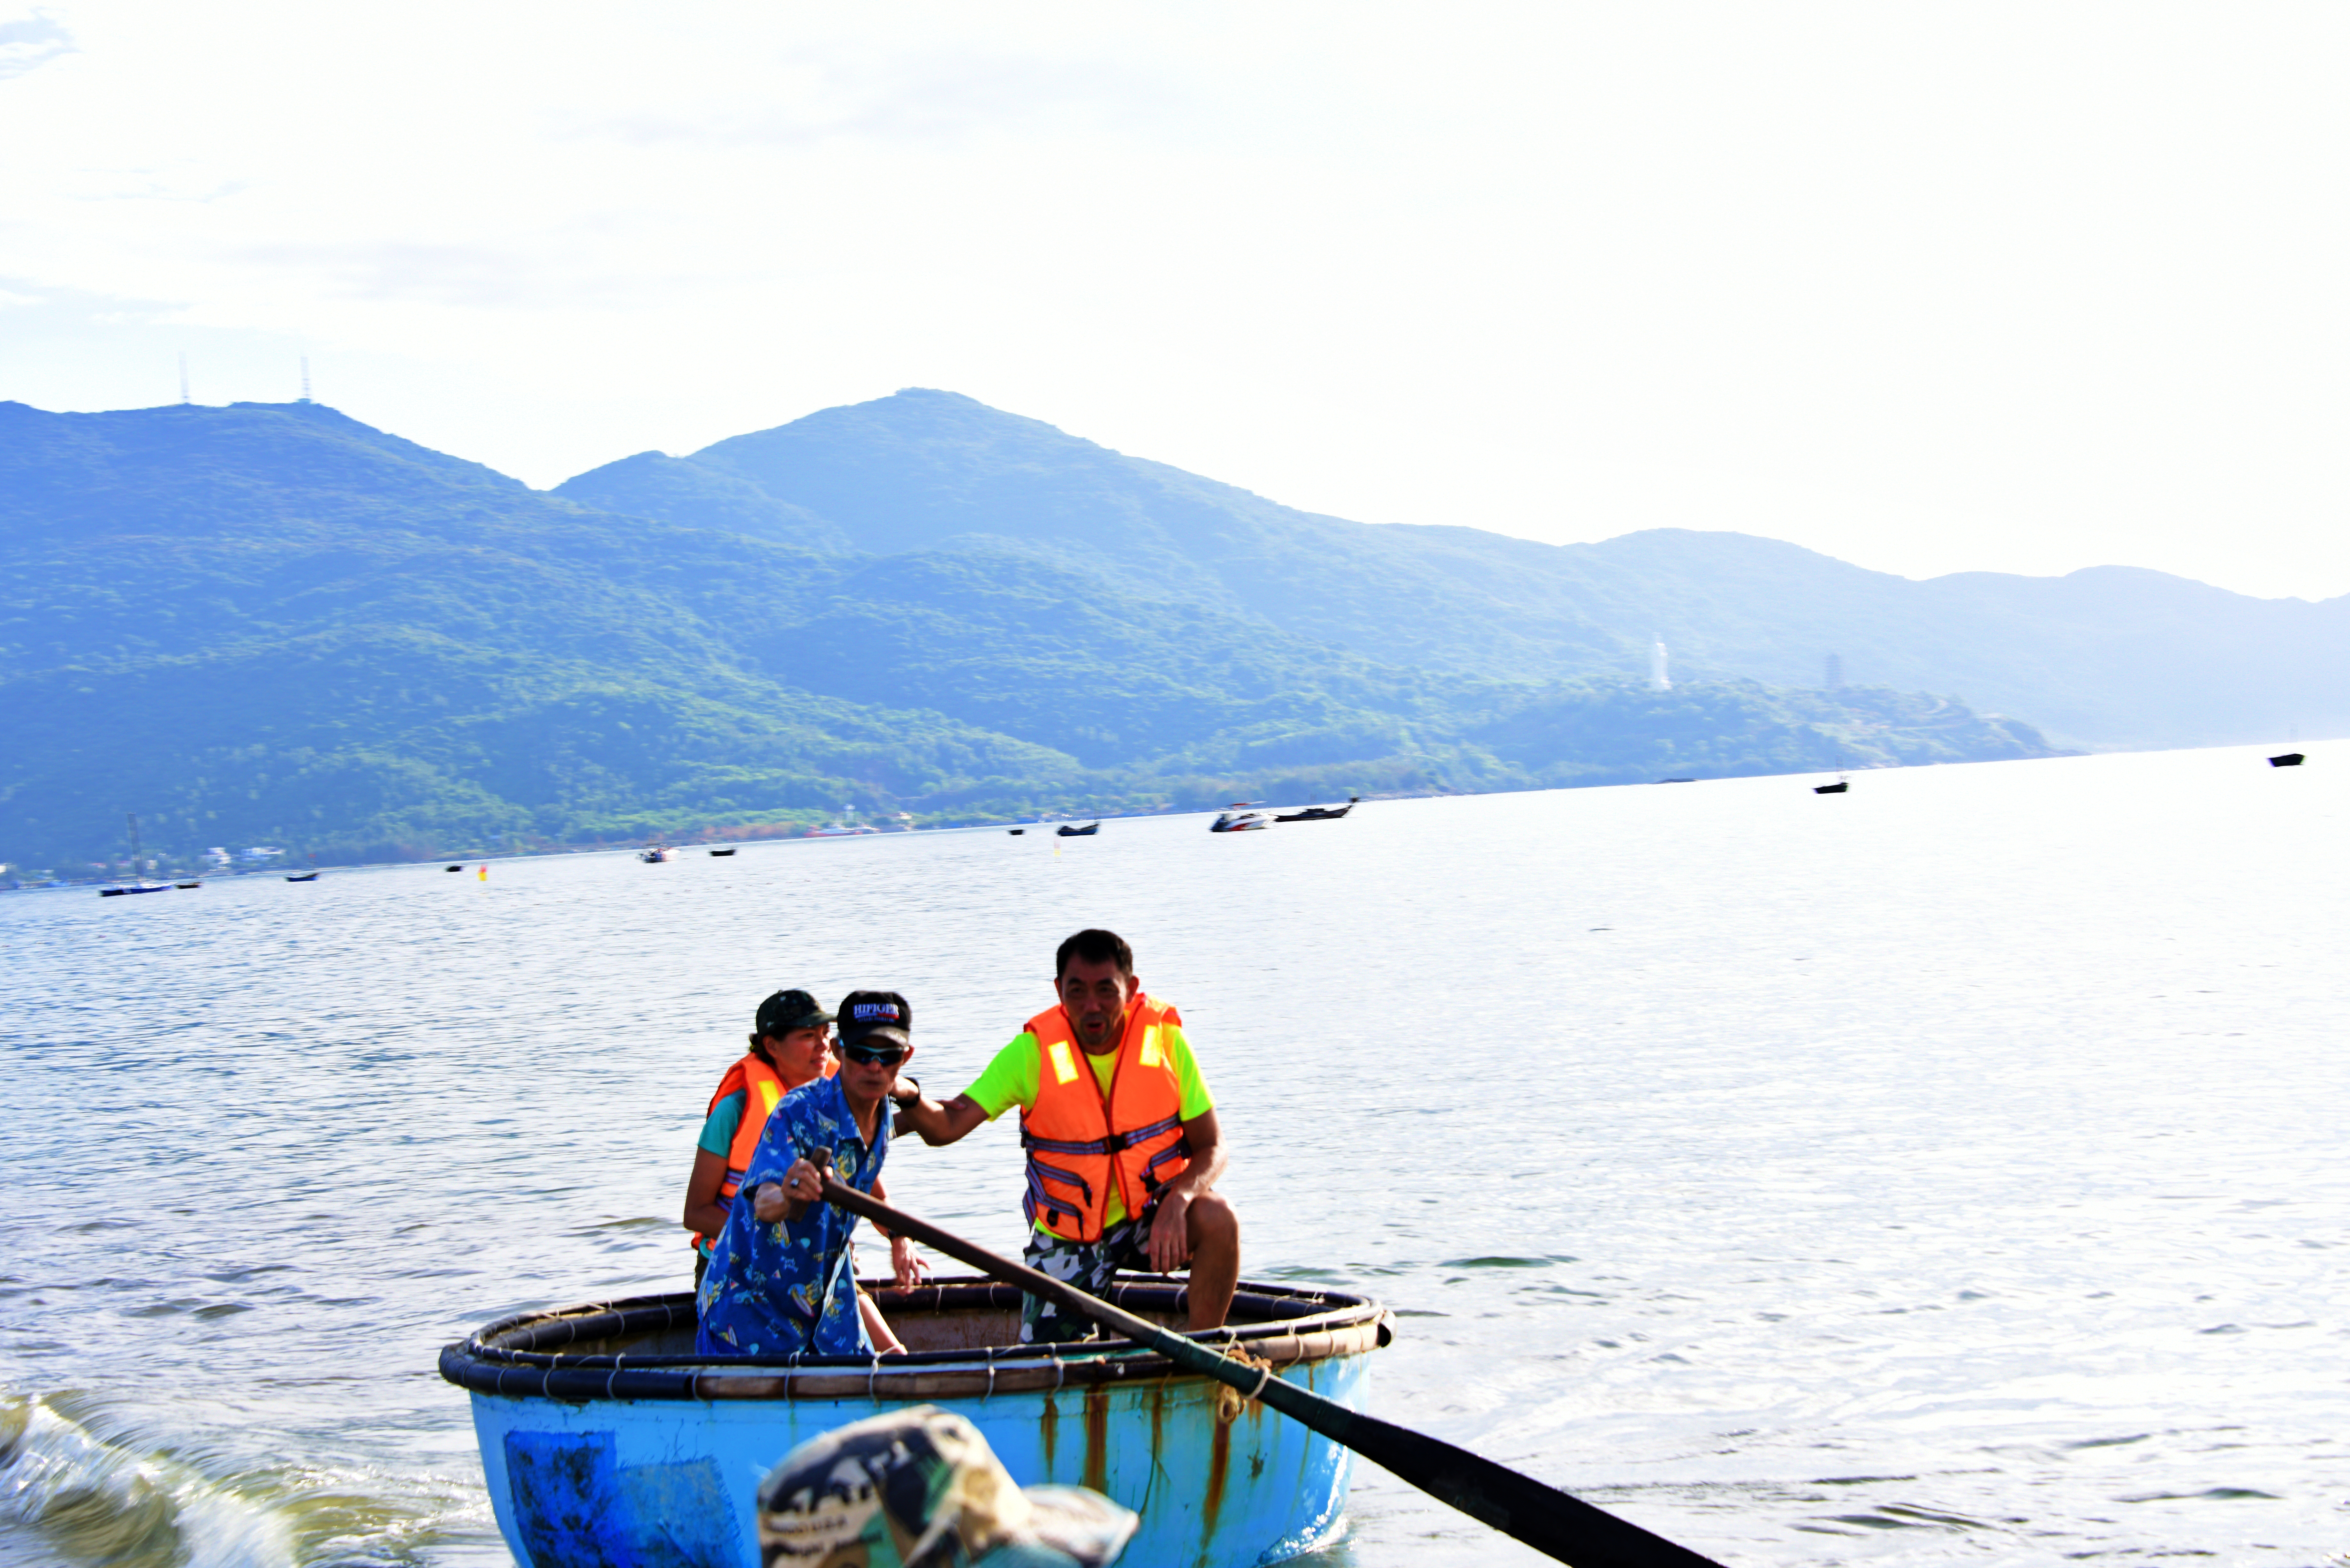 Tuck Meng steering the local fishing boat